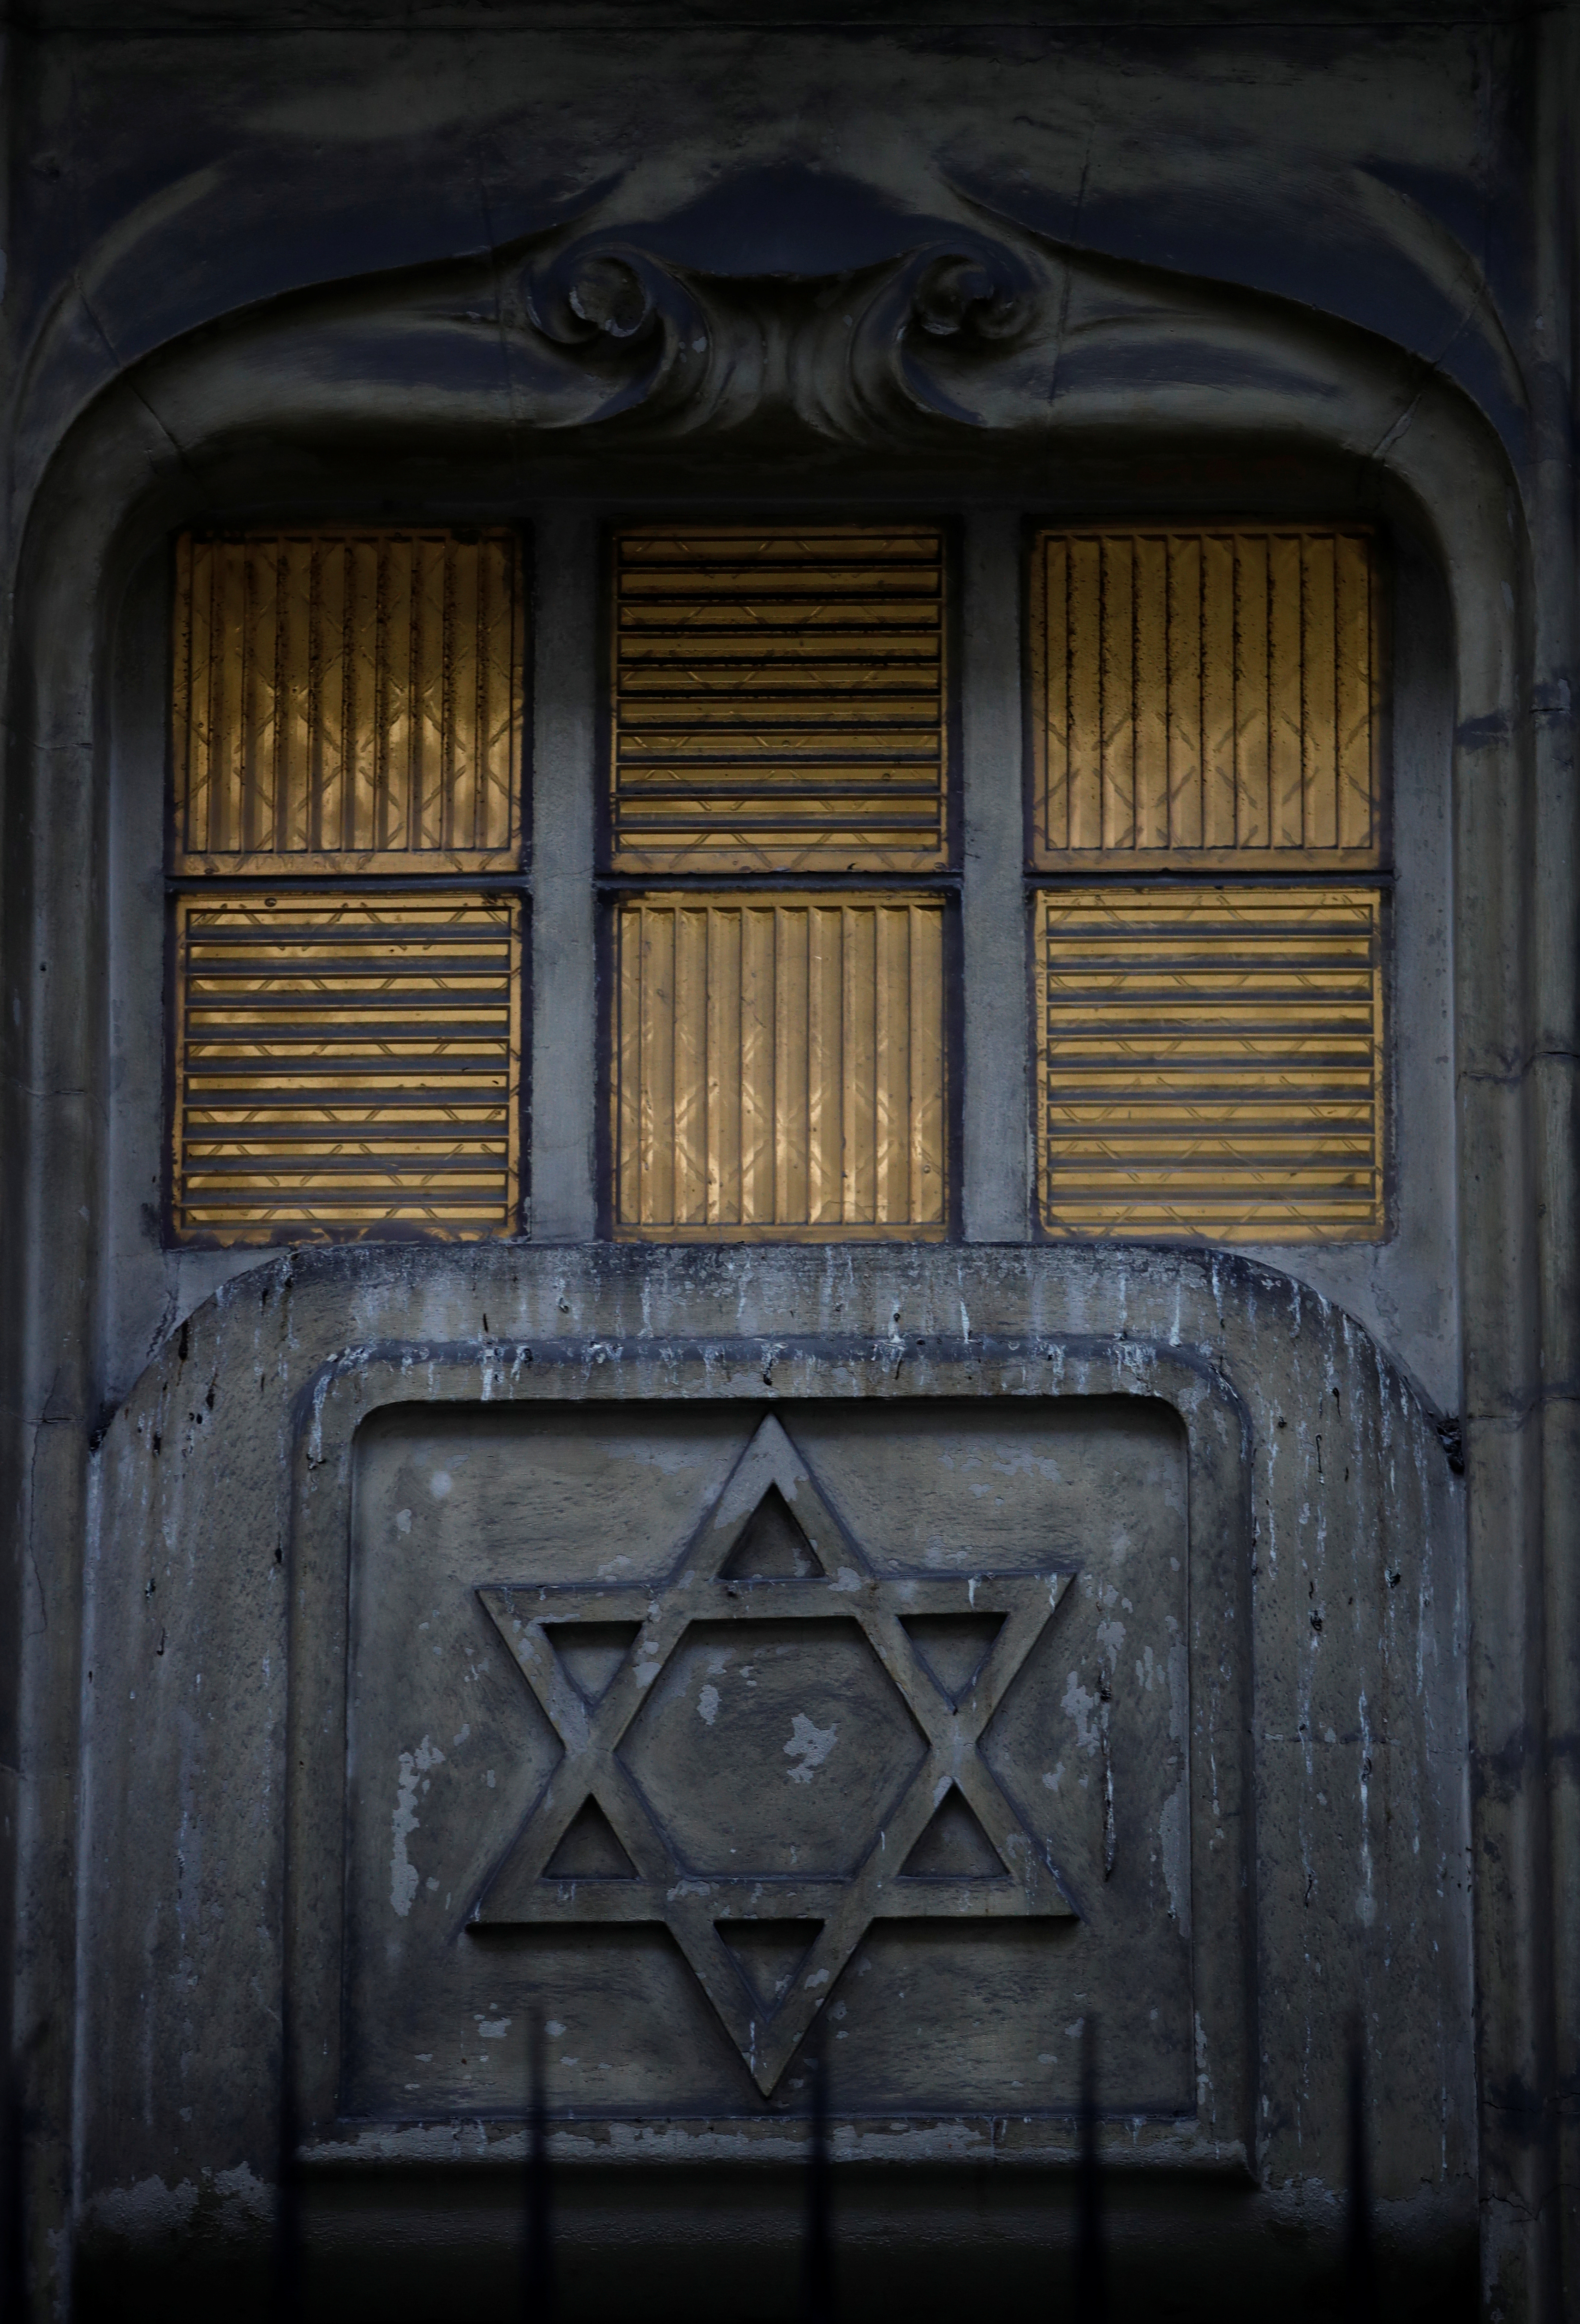 The Star of David is seen on the facade of a synagogue in Paris France, December 10, 2018. REUTERS/Gonzalo Fuentes